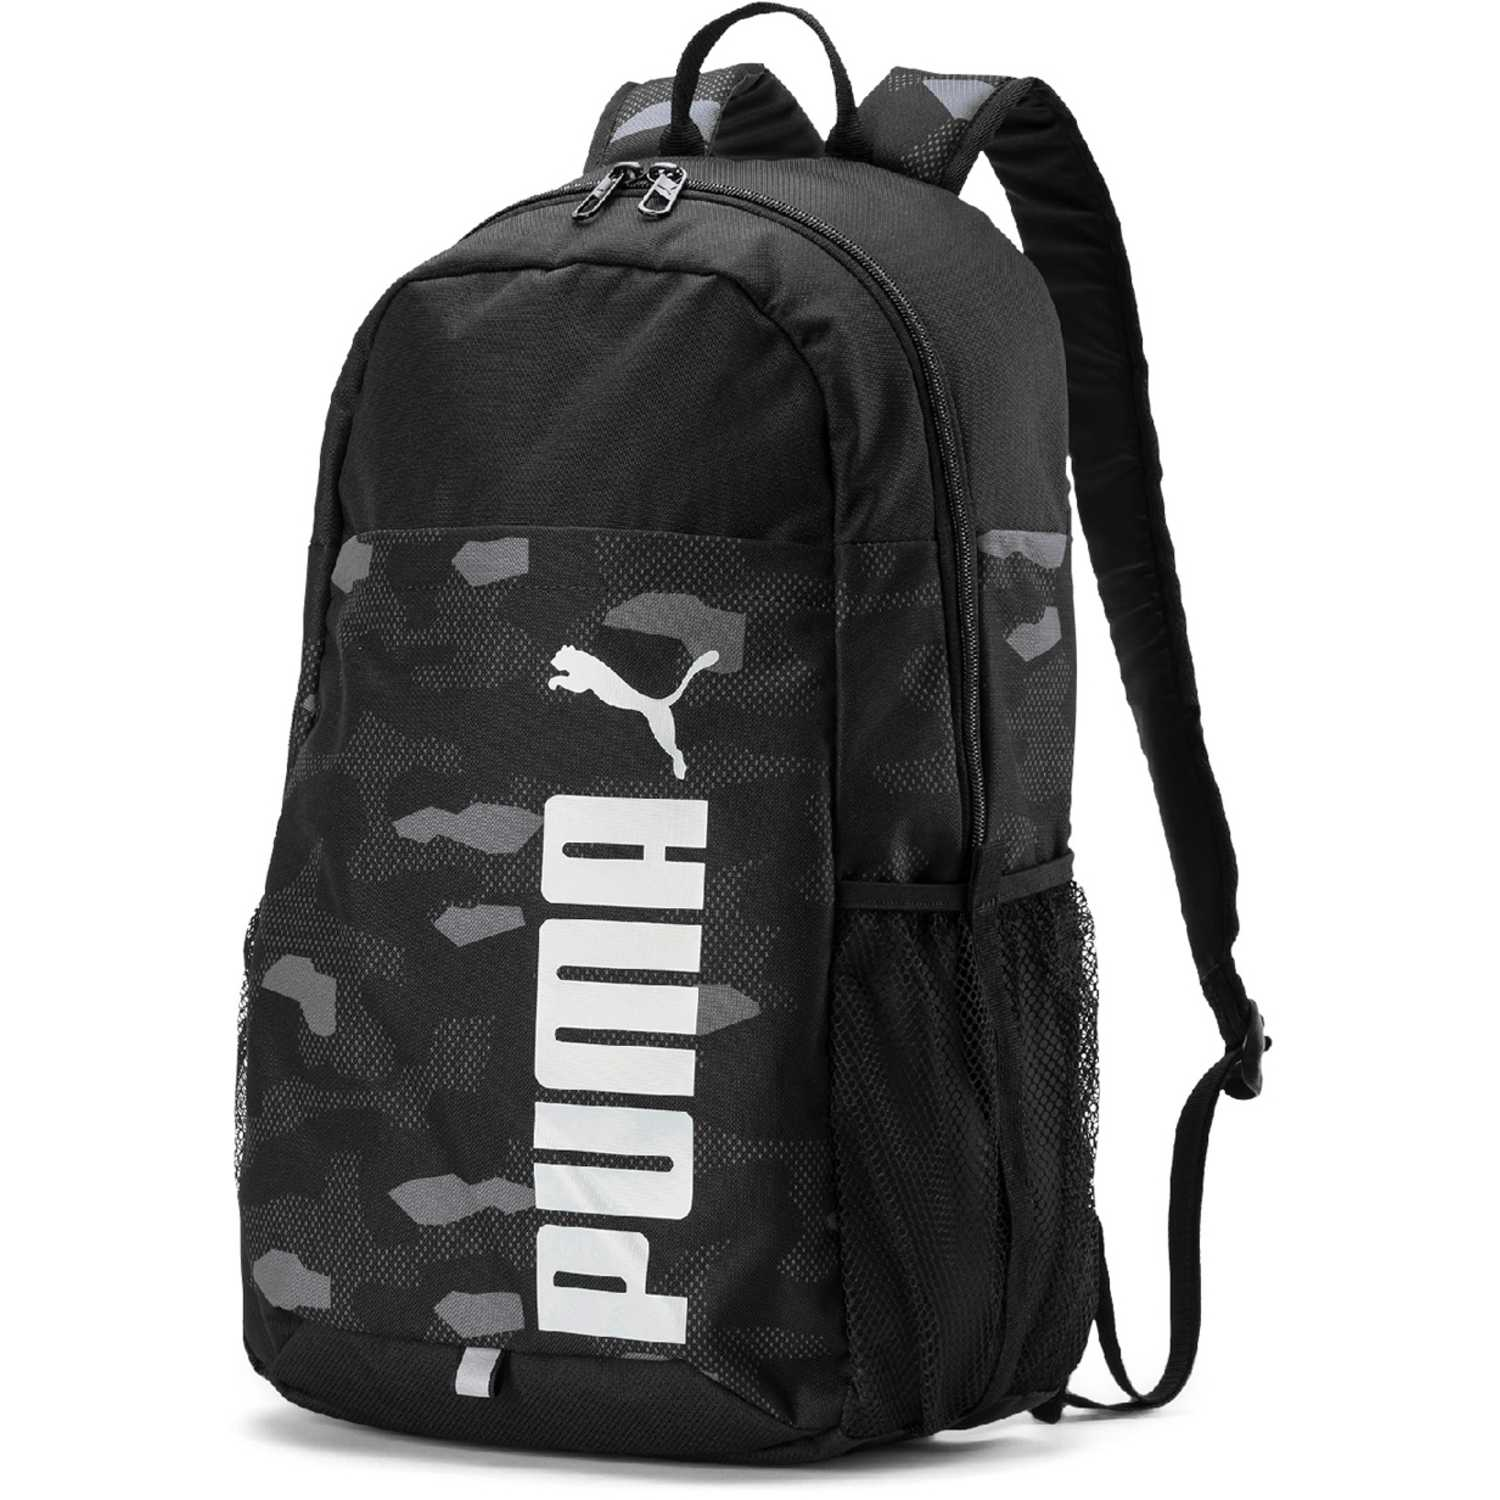 Puma puma style backpack NEGRO / GRIS Mochilas Multipropósitos